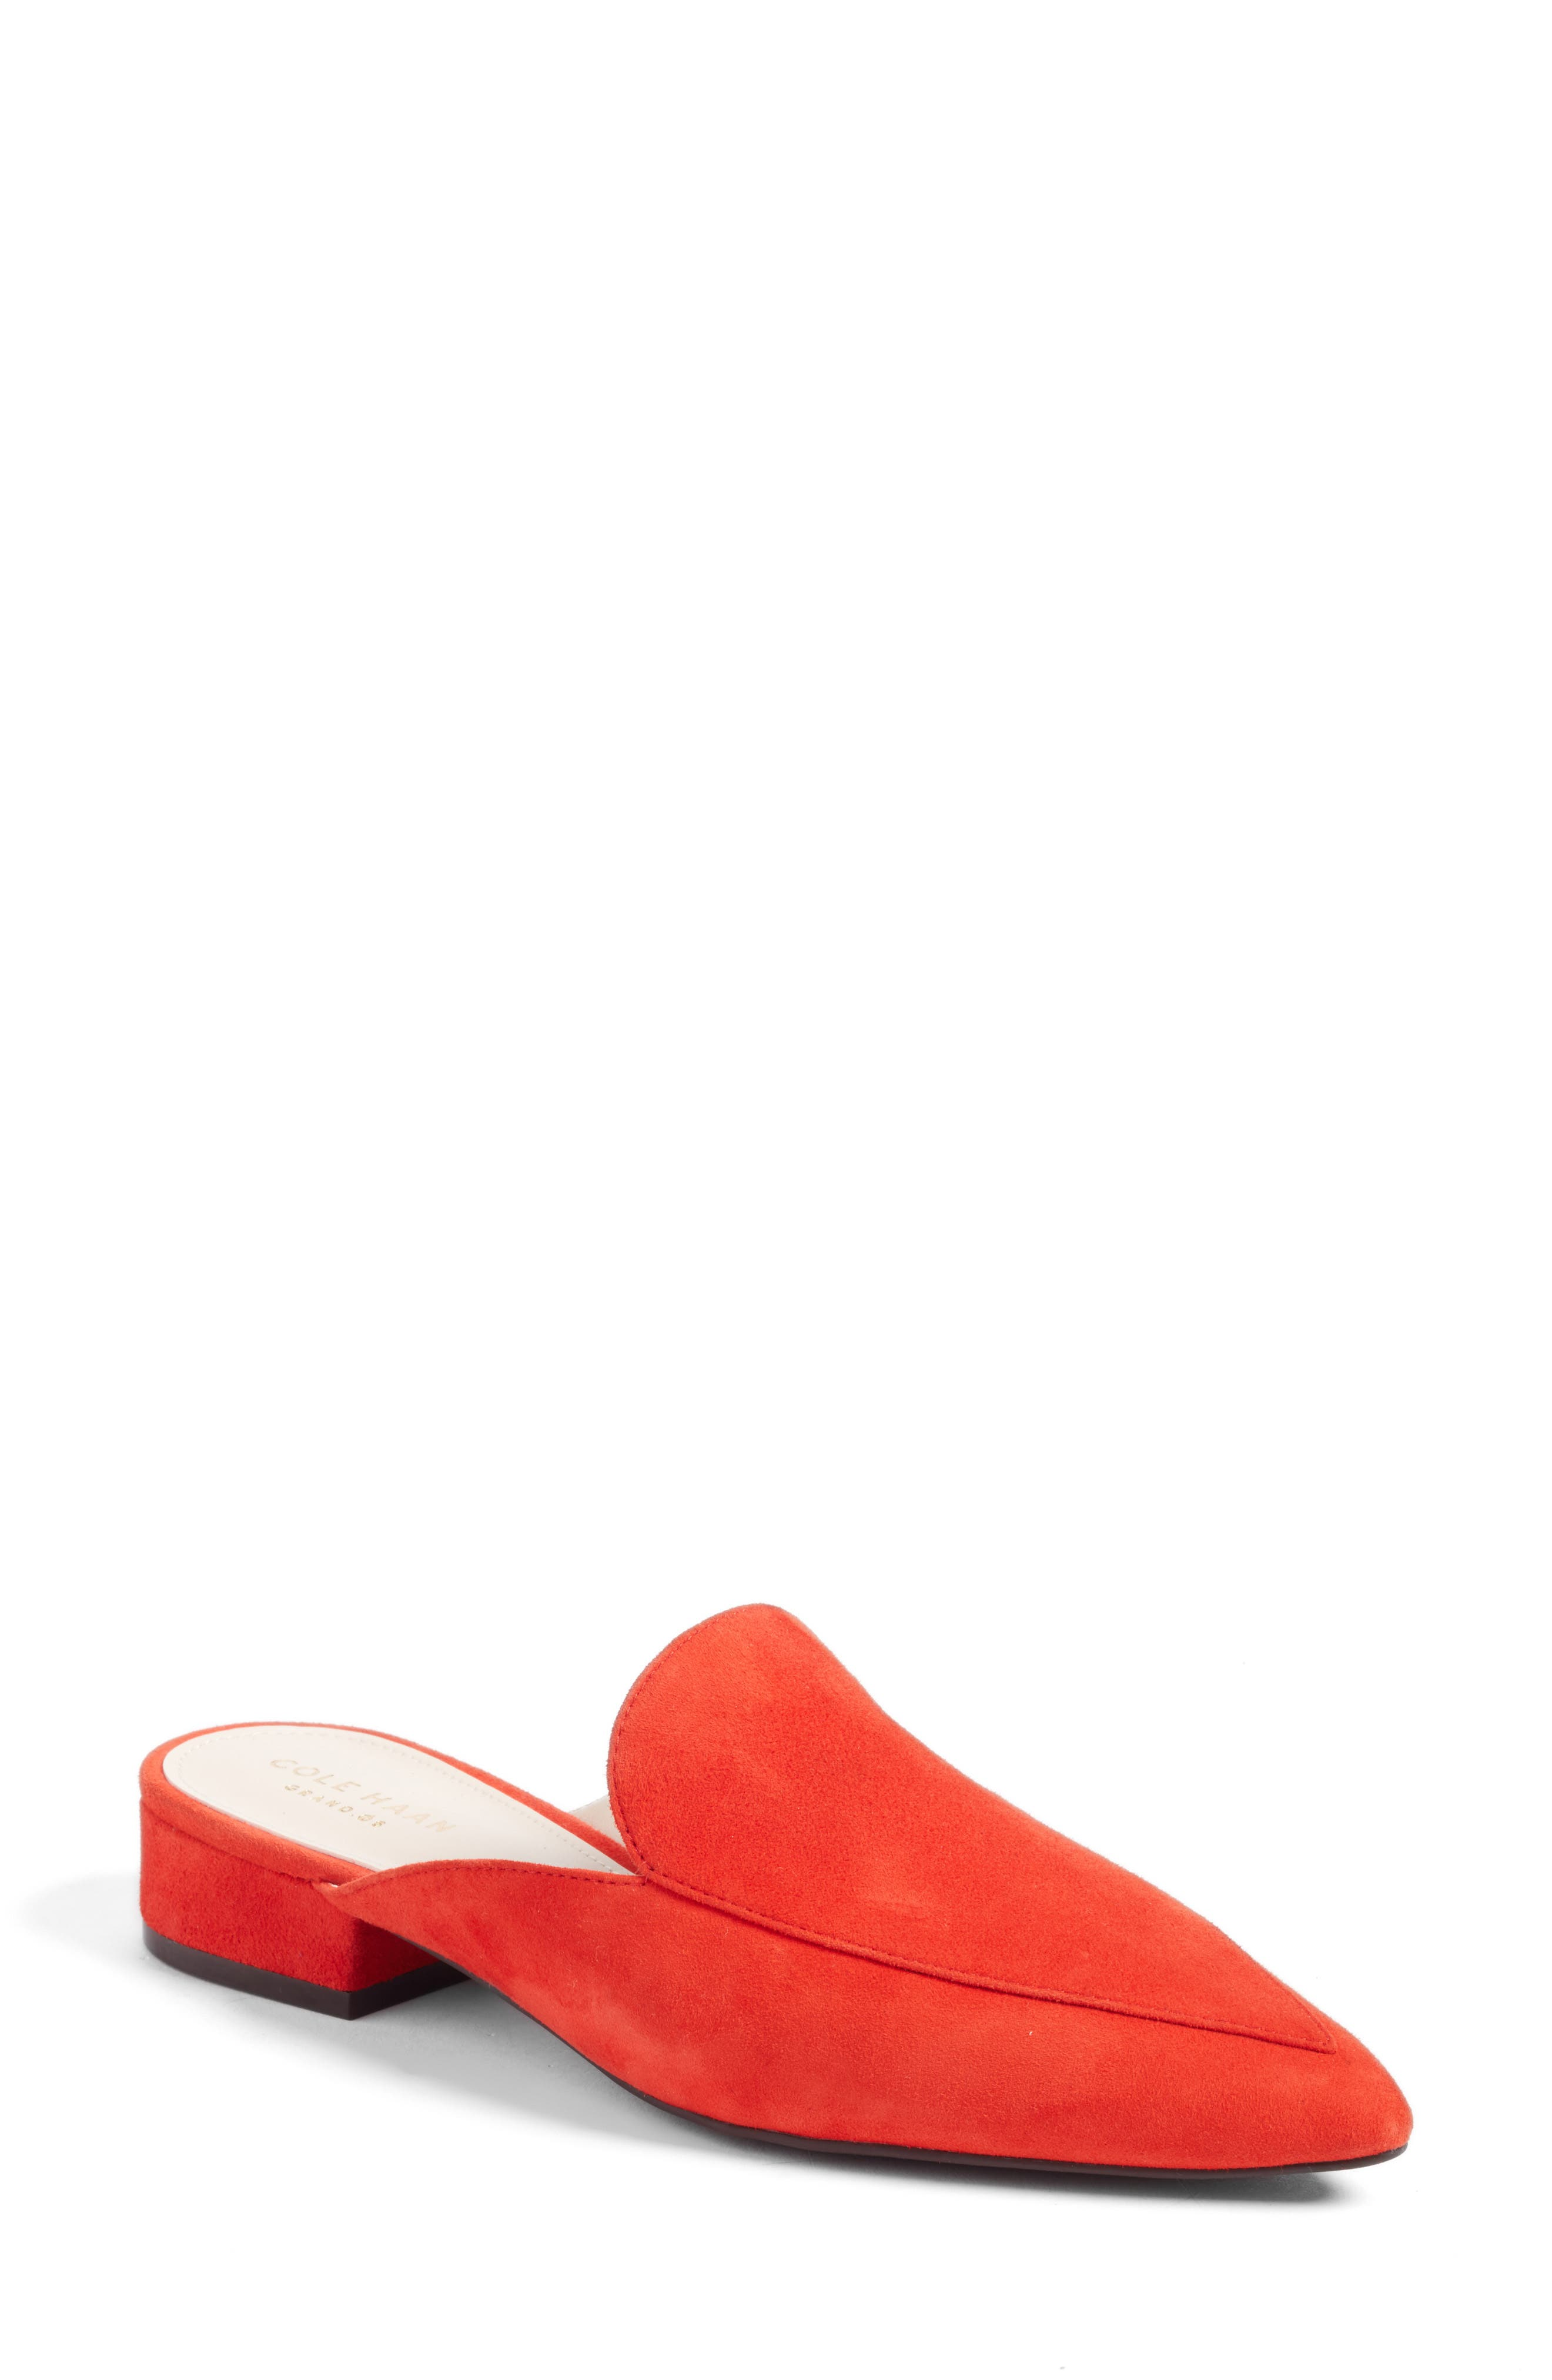 Piper Loafer Mule,                         Main,                         color, Fiery Red Suede